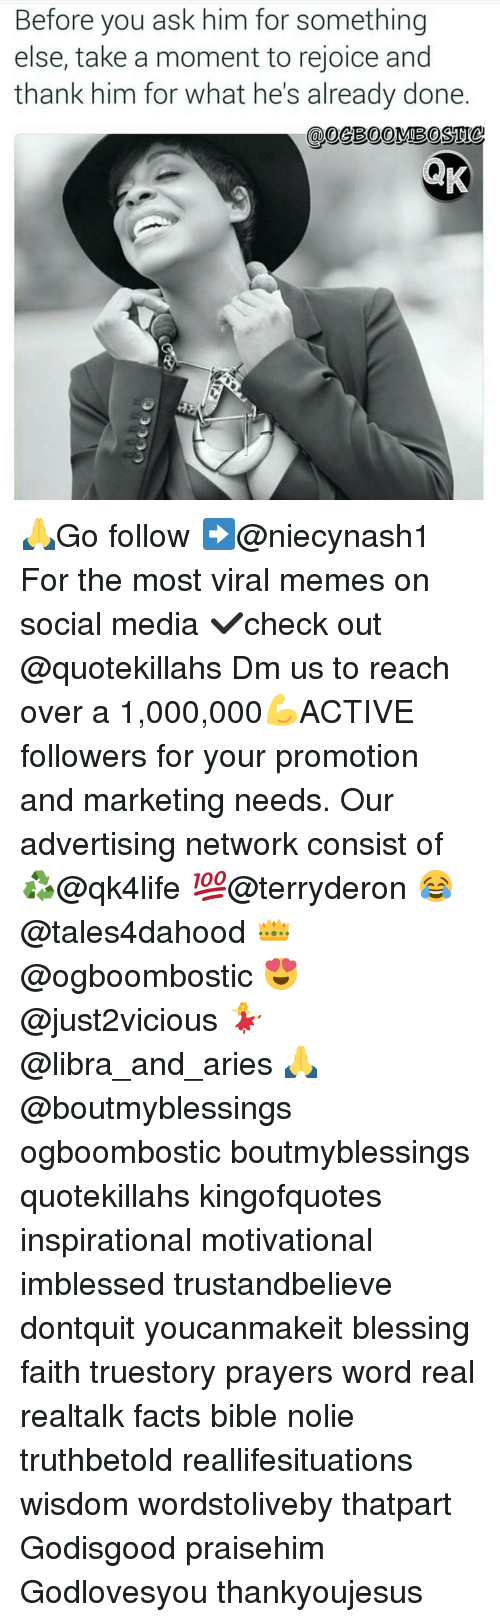 Advertise Network: Before you ask him for something  else, take a moment to rejoice and  thank him for what he's already done 🙏Go follow ➡@niecynash1 For the most viral memes on social media ✔check out @quotekillahs Dm us to reach over a 1,000,000💪ACTIVE followers for your promotion and marketing needs. Our advertising network consist of ♻@qk4life 💯@terryderon 😂@tales4dahood 👑@ogboombostic 😍@just2vicious 💃@libra_and_aries 🙏@boutmyblessings ogboombostic boutmyblessings quotekillahs kingofquotes inspirational motivational imblessed trustandbelieve dontquit youcanmakeit blessing faith truestory prayers word real realtalk facts bible nolie truthbetold reallifesituations wisdom wordstoliveby thatpart Godisgood praisehim Godlovesyou thankyoujesus